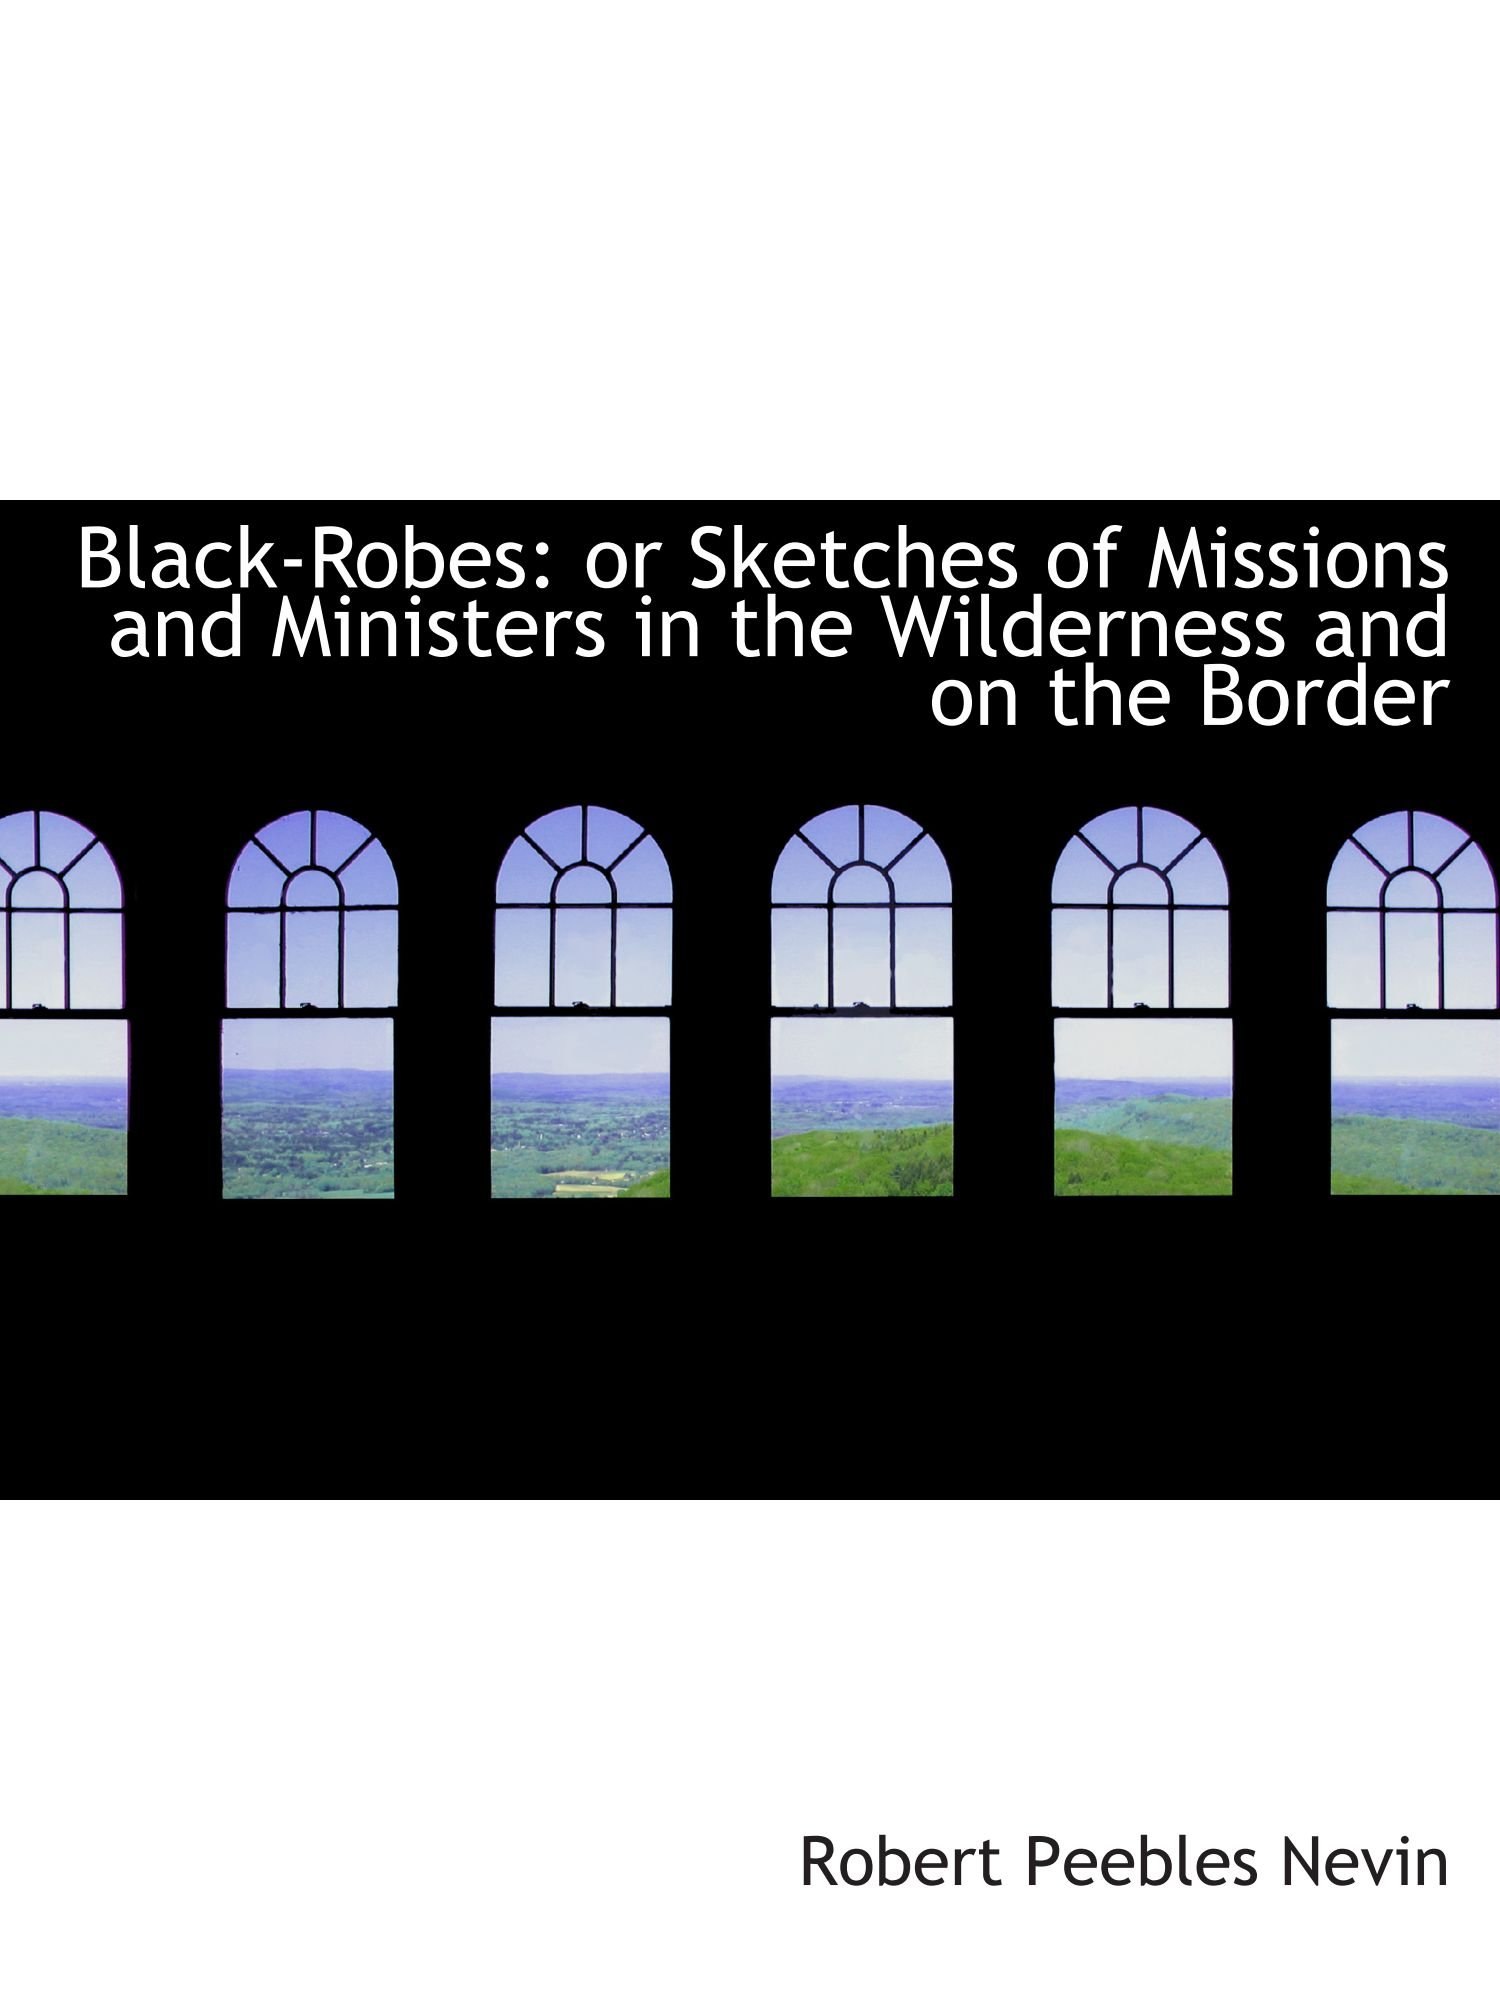 Black-Robes: or Sketches of Missions and Ministers in the Wilderness and on the Border pdf epub